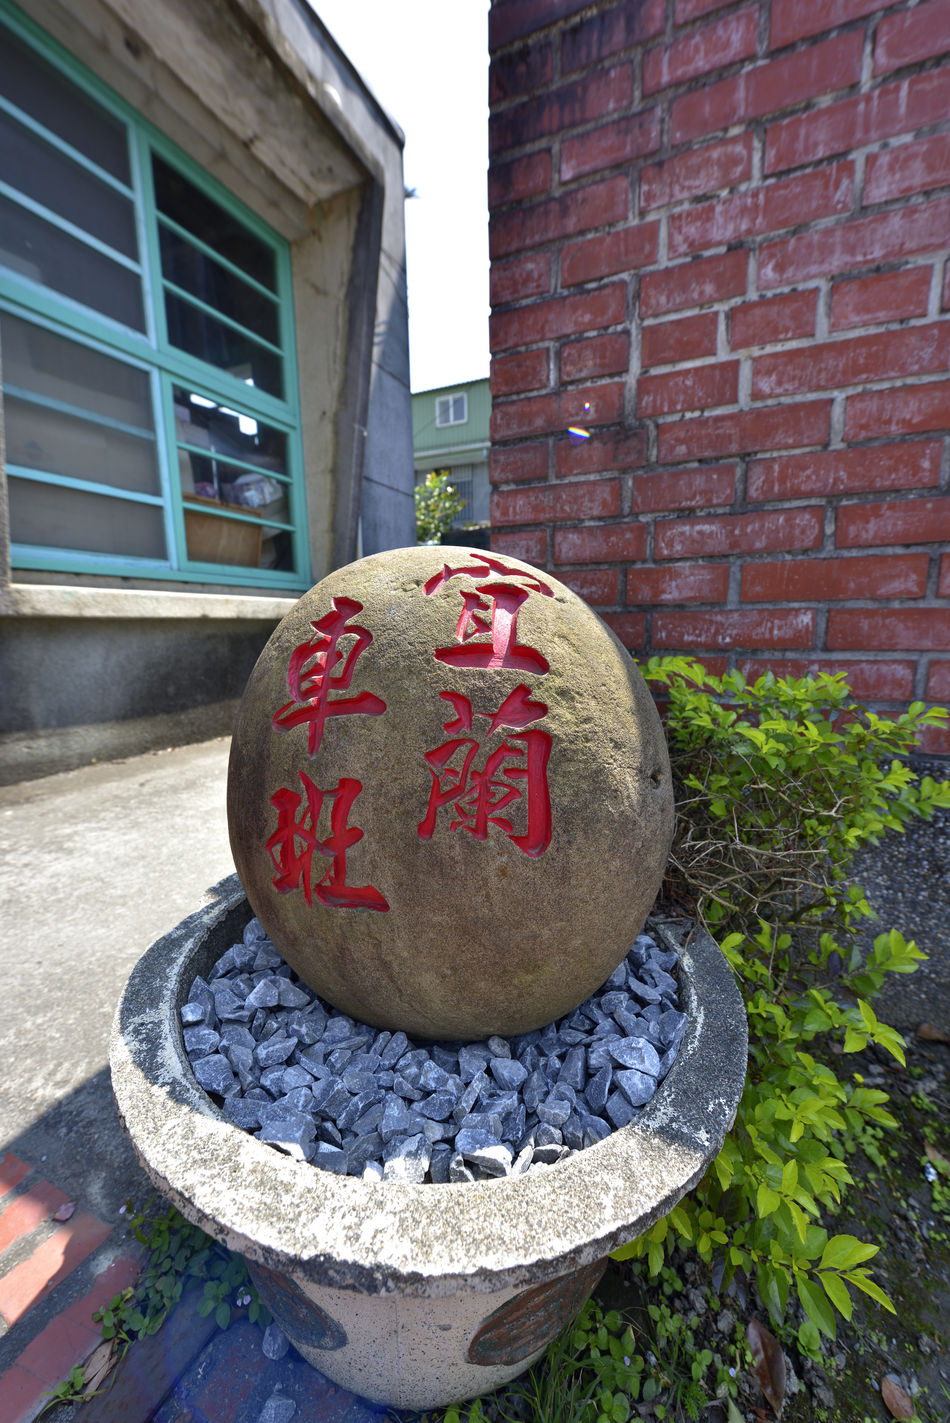 Architecture Building Exterior Built Structure Celebration City Day Go Sightseeing Landmark No People Nostalgic  Outdoors Red Rock Station Text Tourism Travel Yilan Yilan Station Yilan,Taiwan